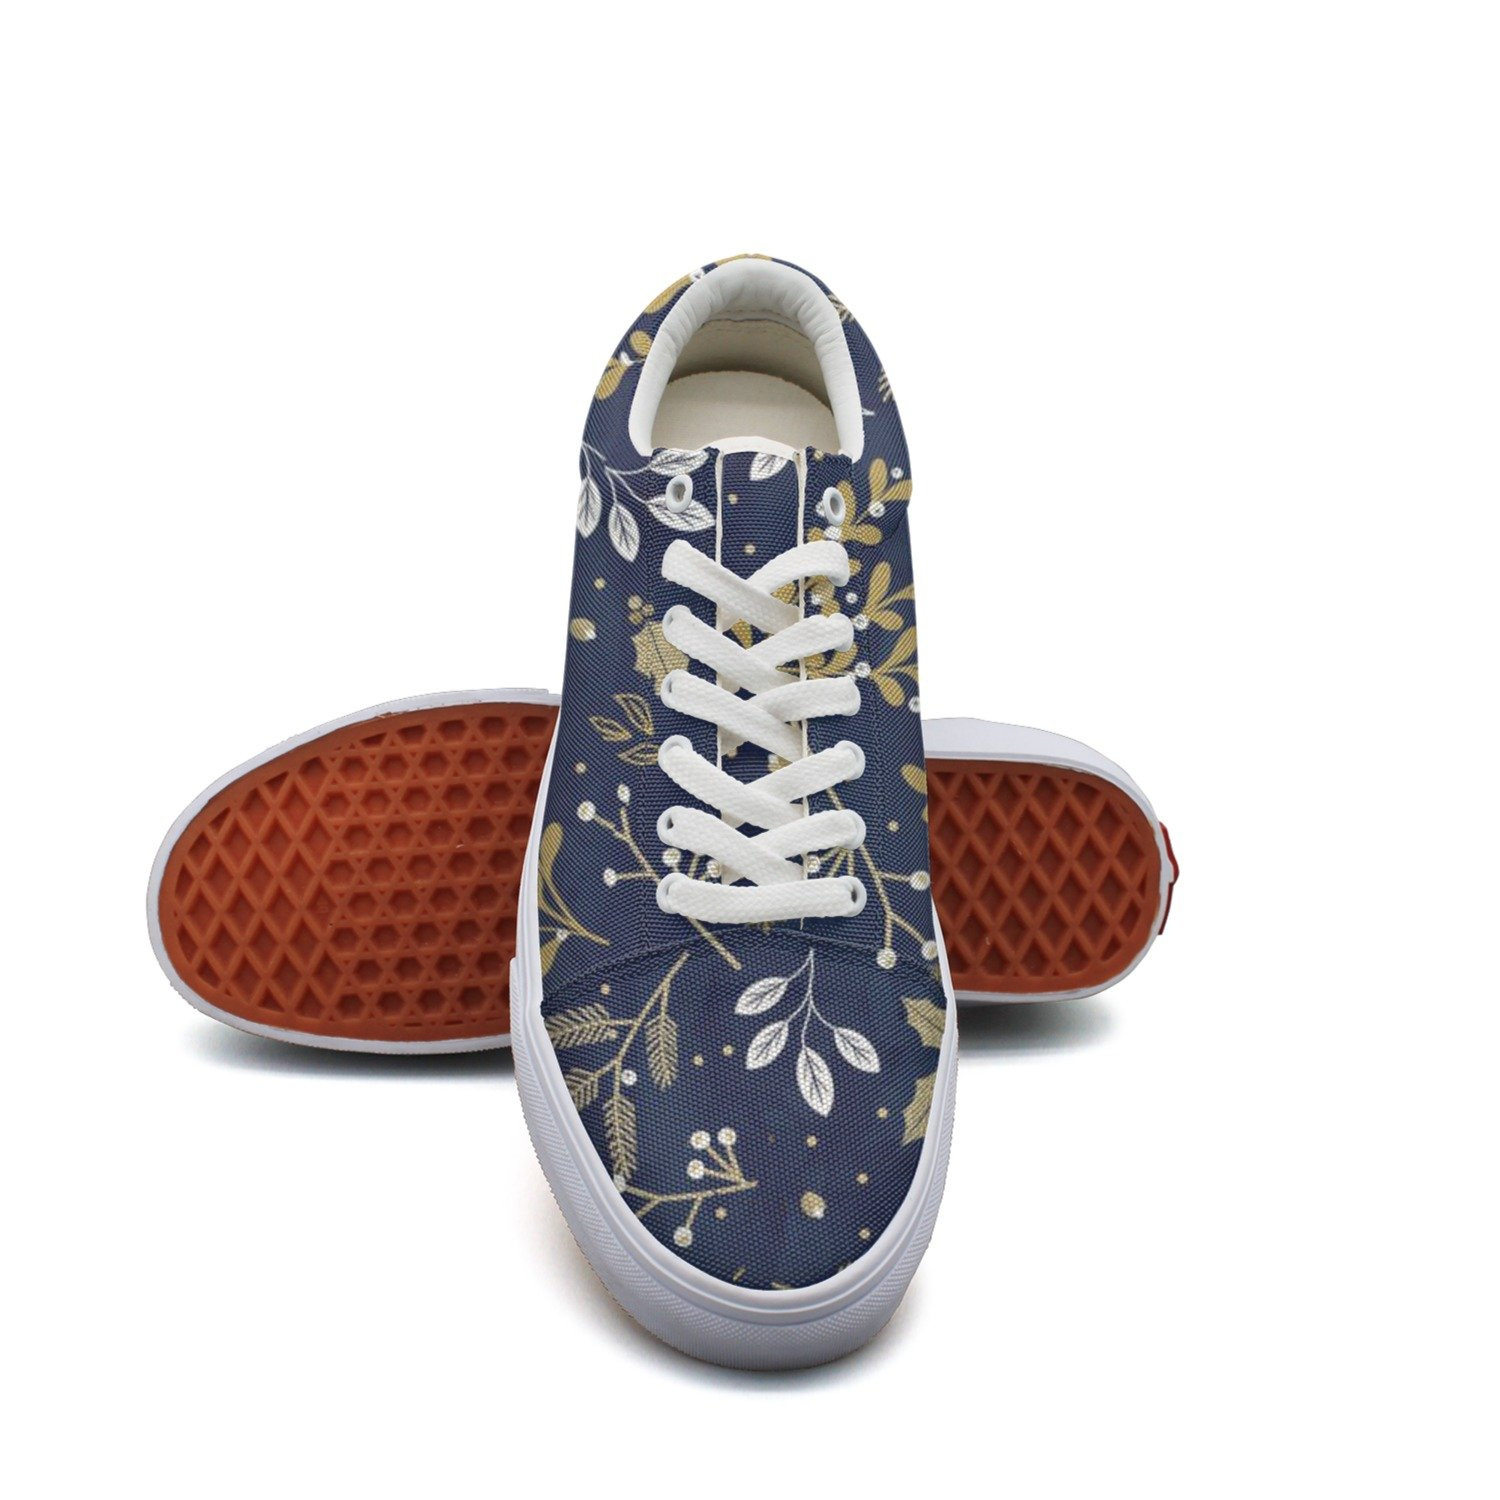 Ouxioaz Womens Skateboarding Shoes Flower Leaf Tree Lace-up Running Shoes